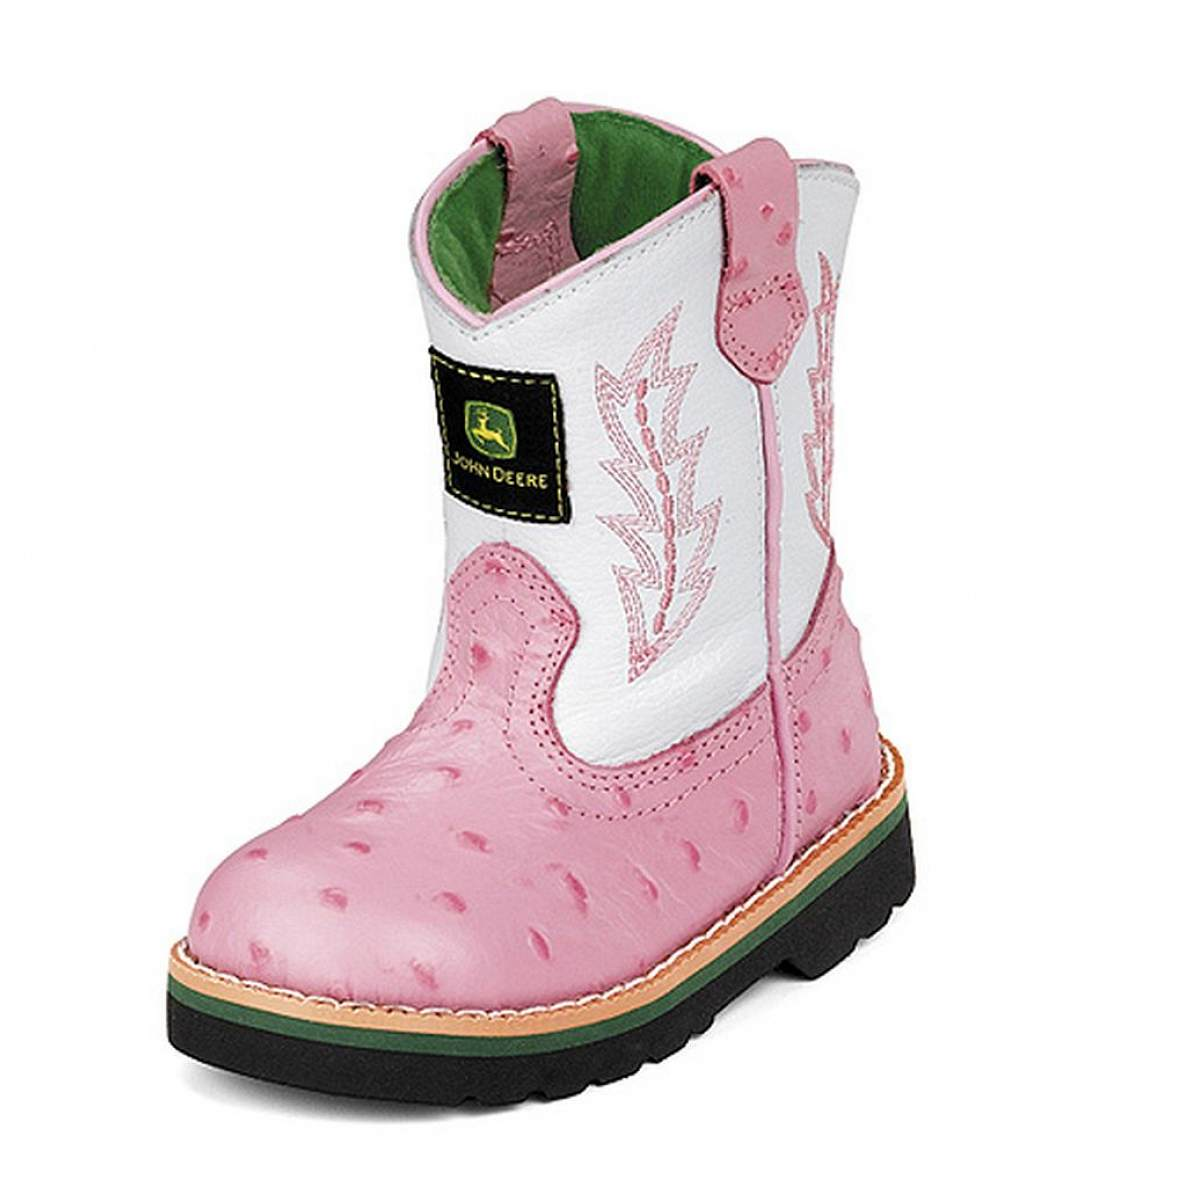 John Deere John Deere Girls Pink Ostrich Leather Western Boots Toddler ...